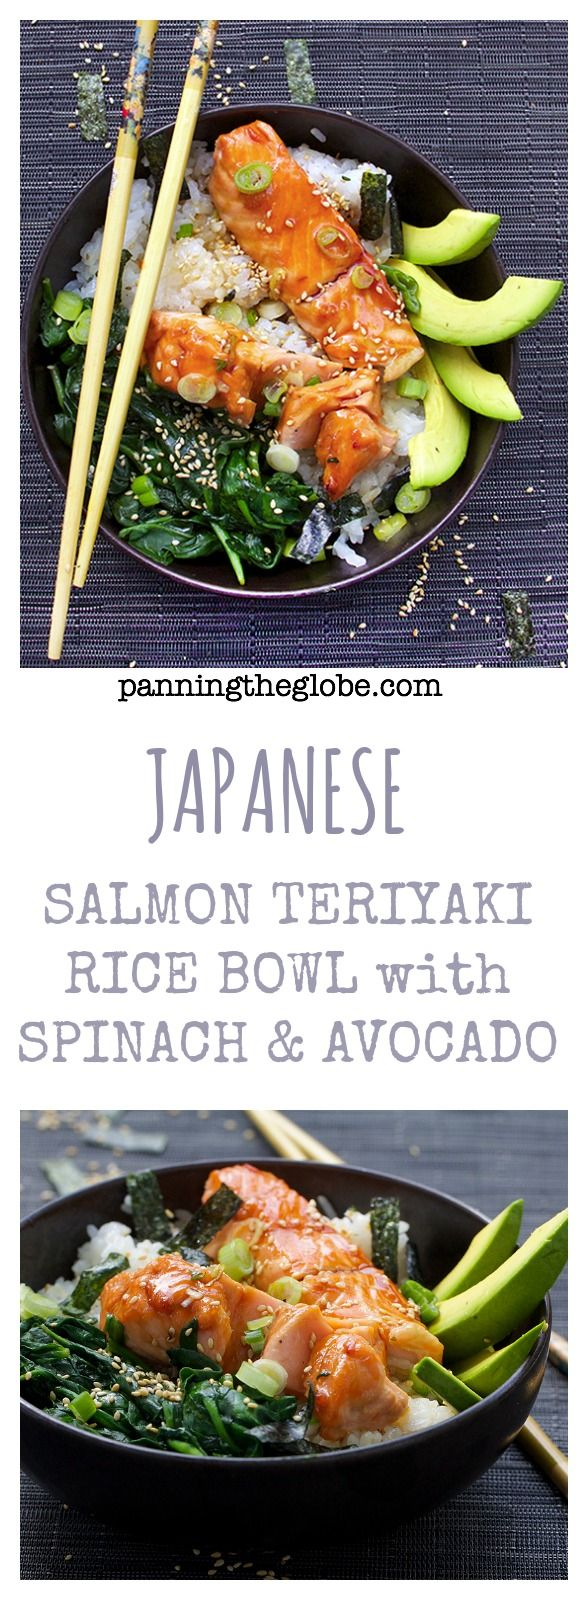 Salmon teriyaki rice bowl